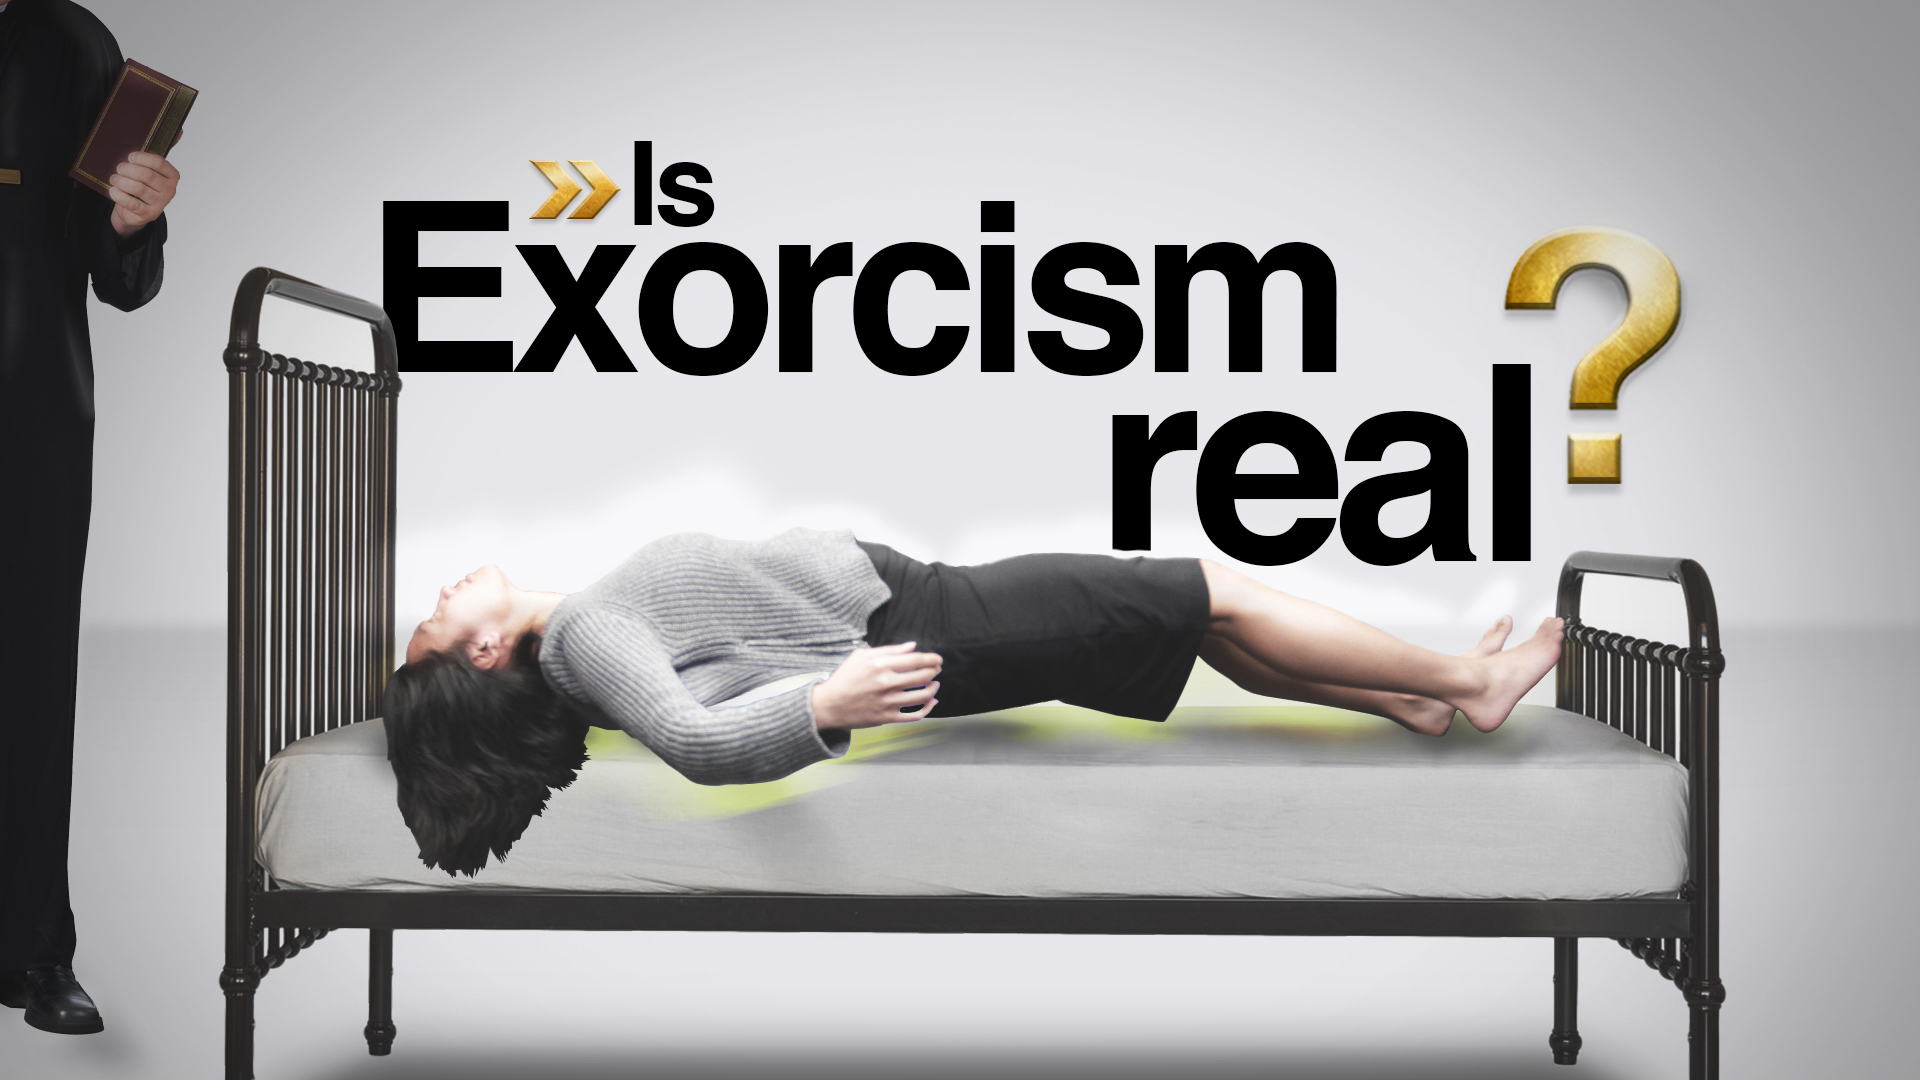 Is Exorcism Real?